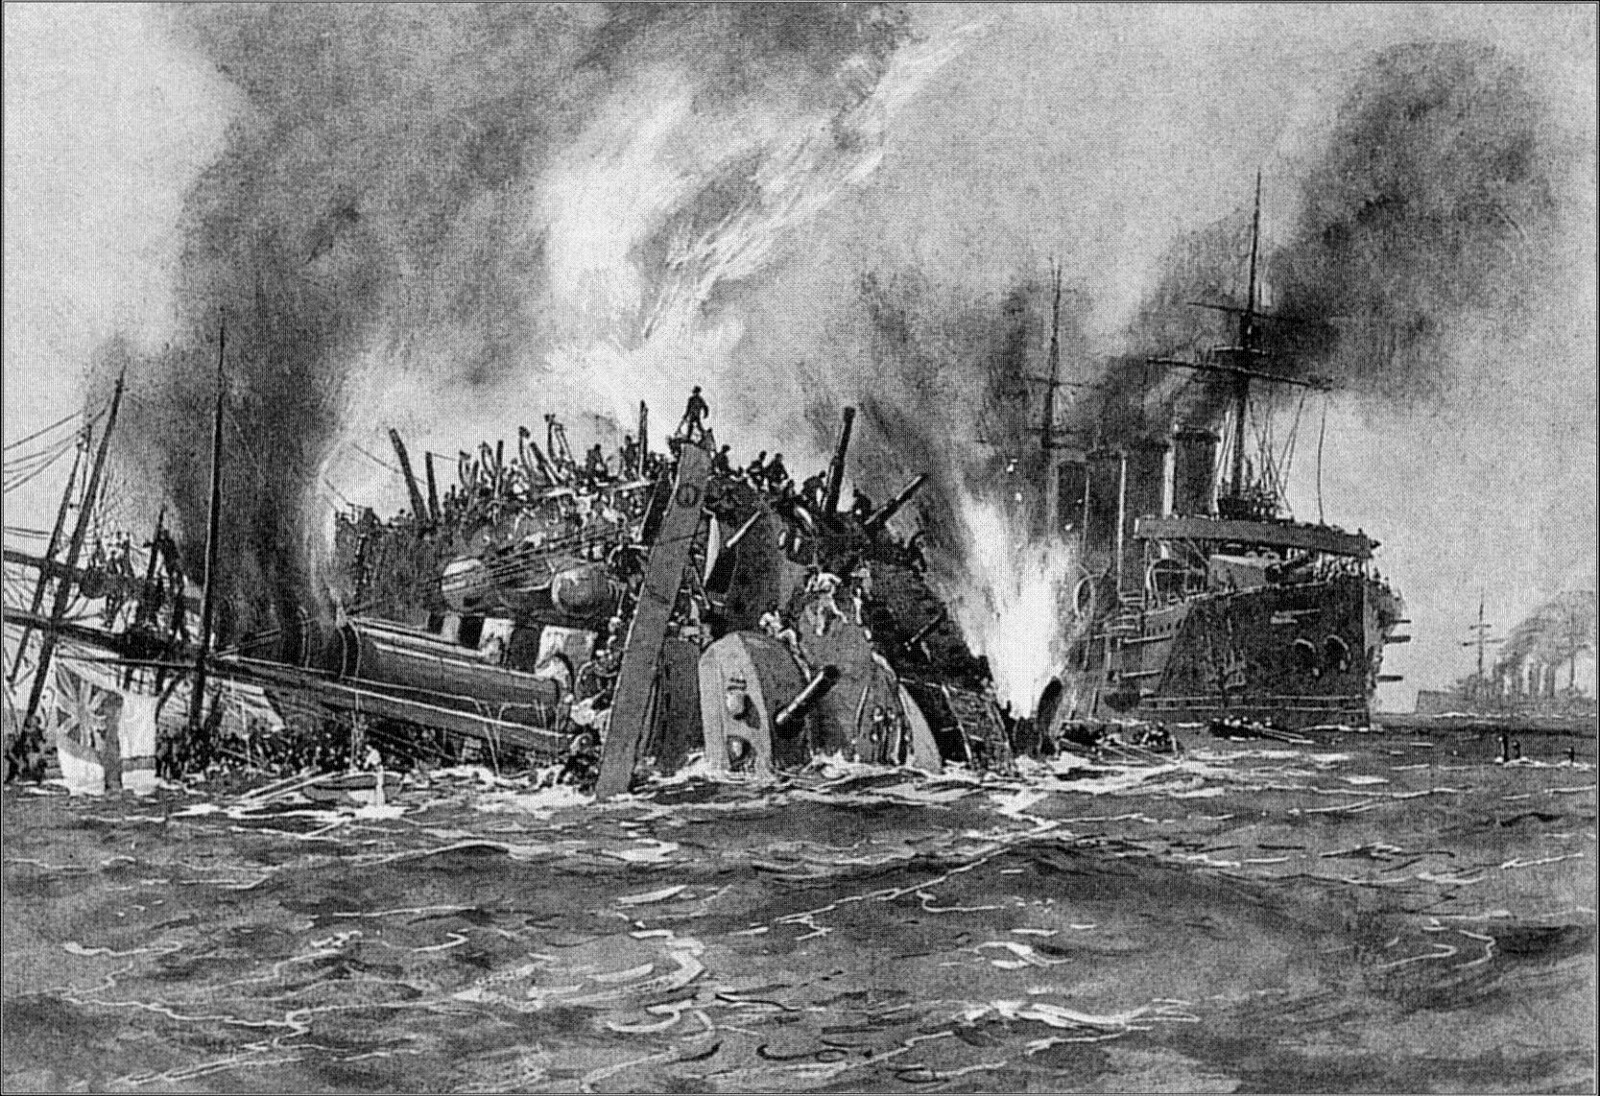 Gunboat Diplomacy: The Franco-Siamese War of 1893 2